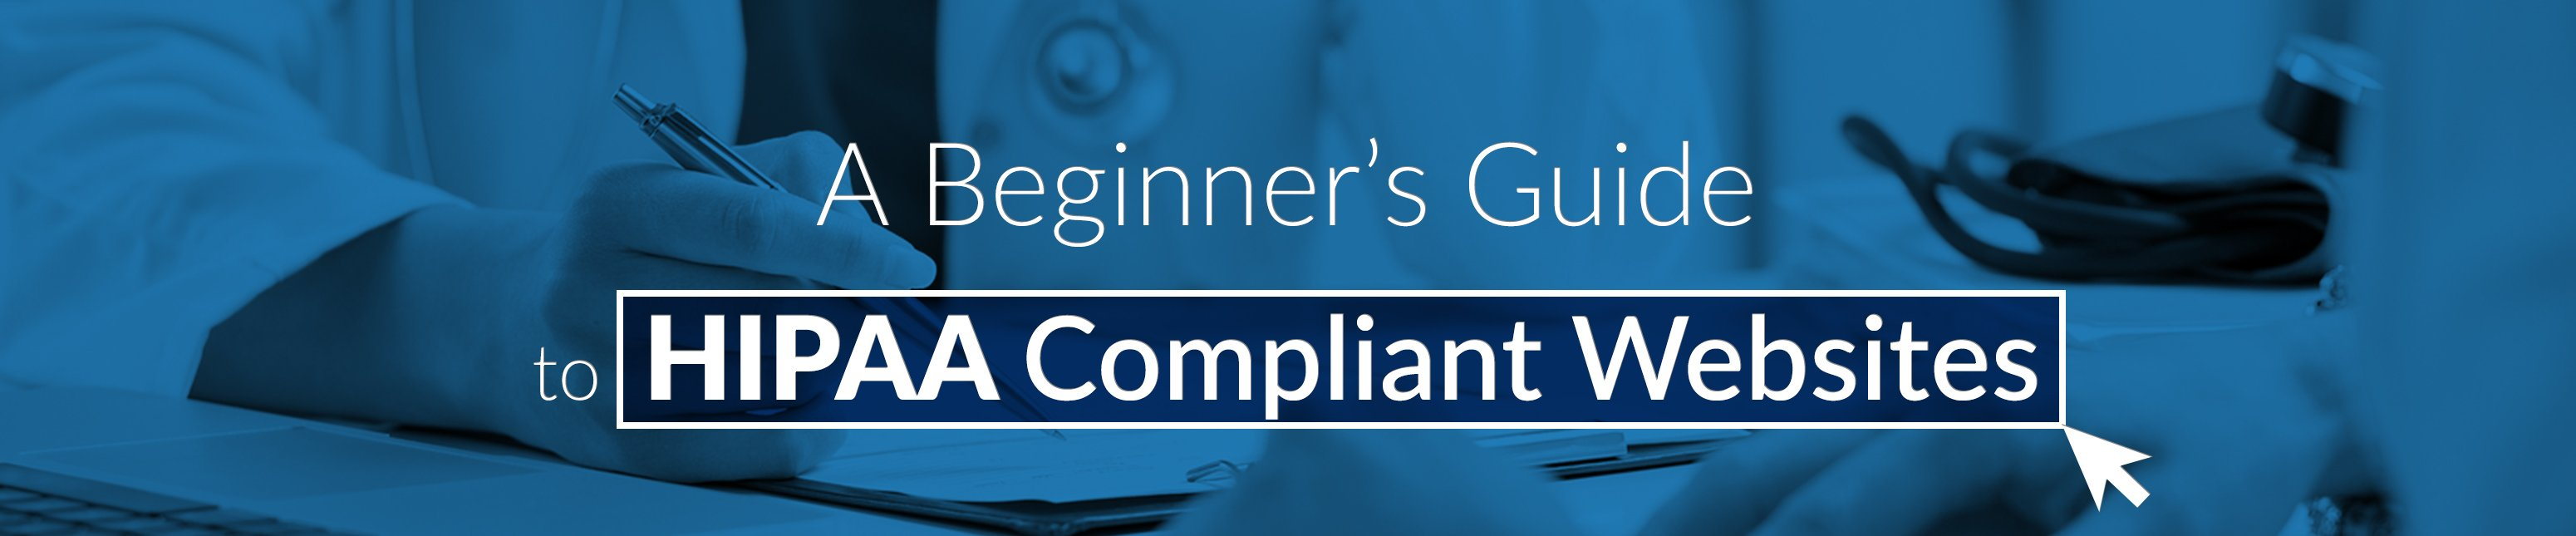 Beginner's Guide to HIPAA Compliant Websites